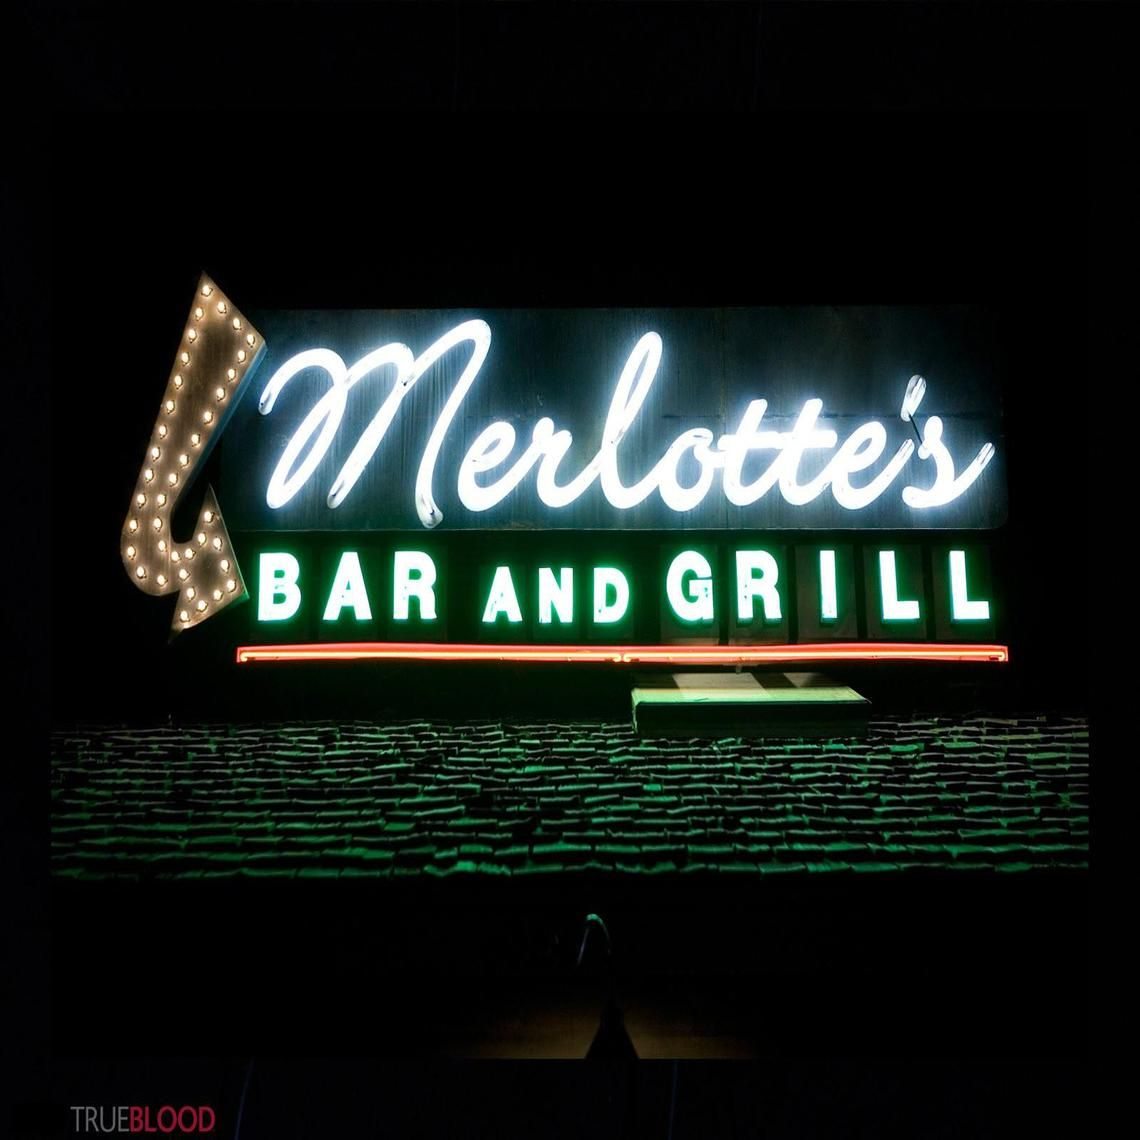 Merlottes Bar and Grill